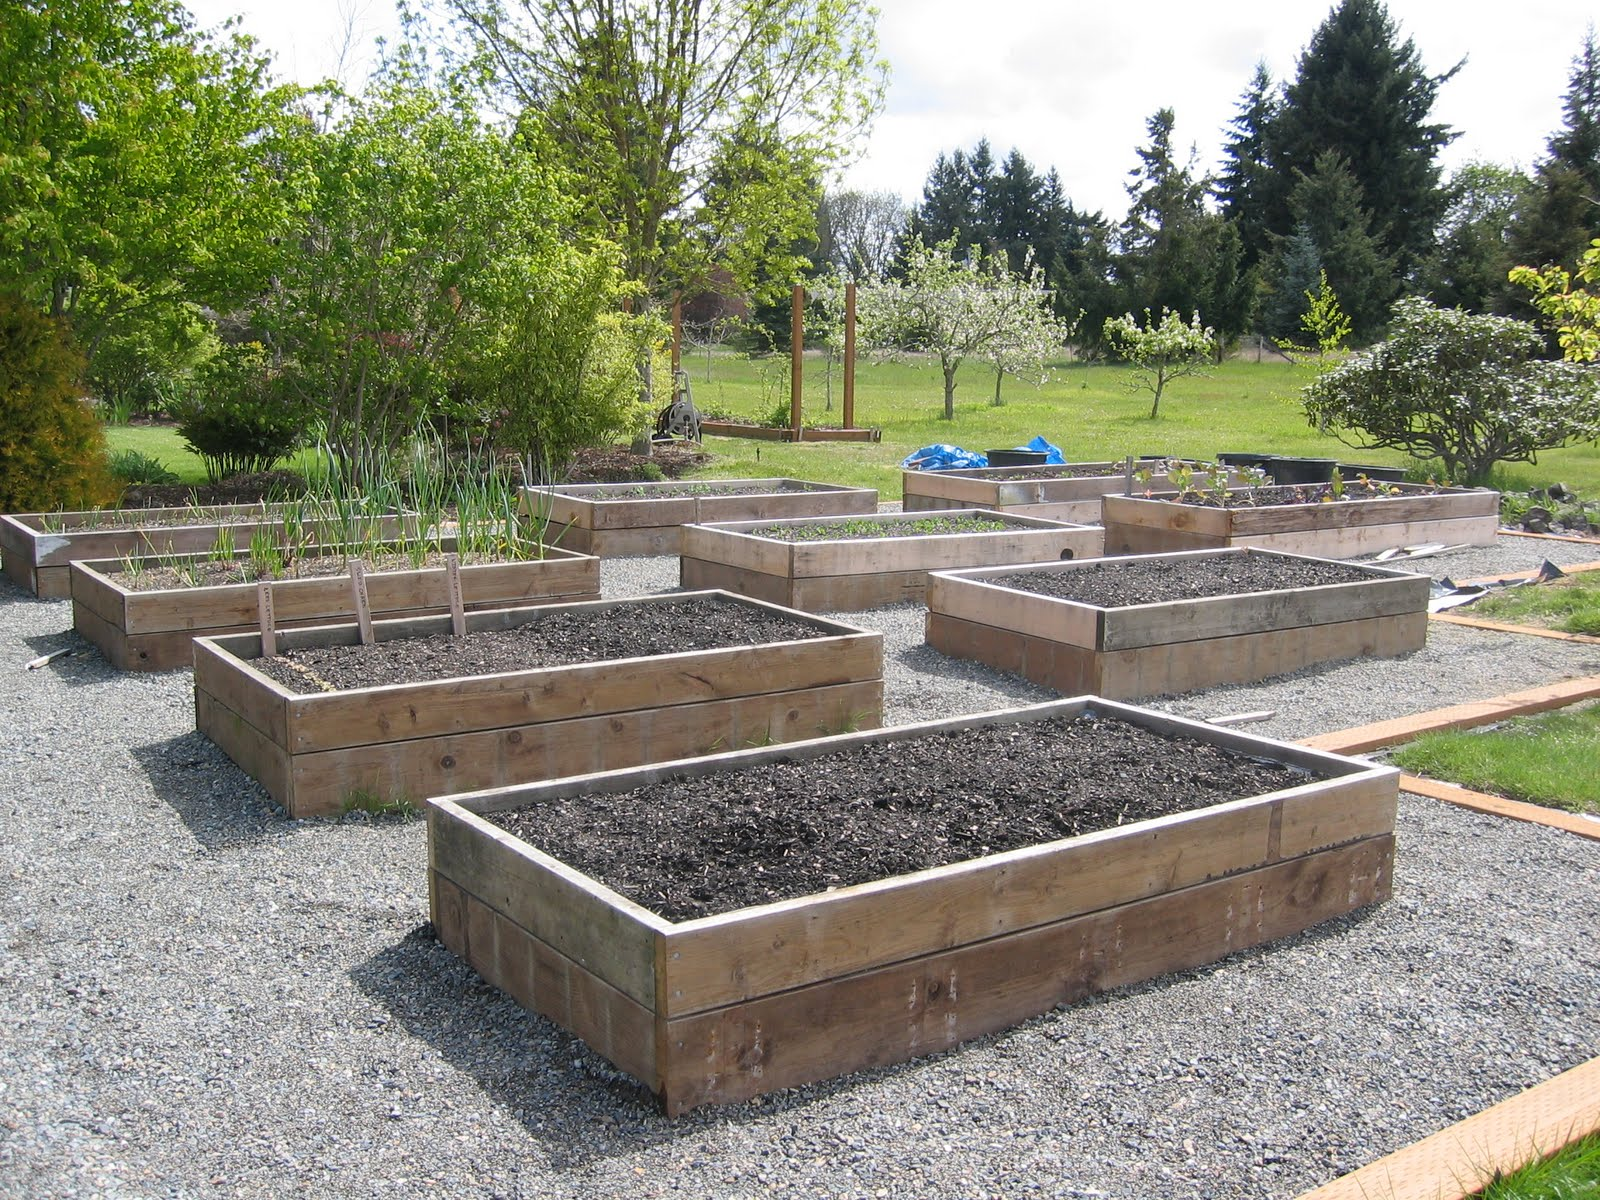 The tacoma kitchen garden journal raised vegetable beds for Raised vegetable garden bed designs